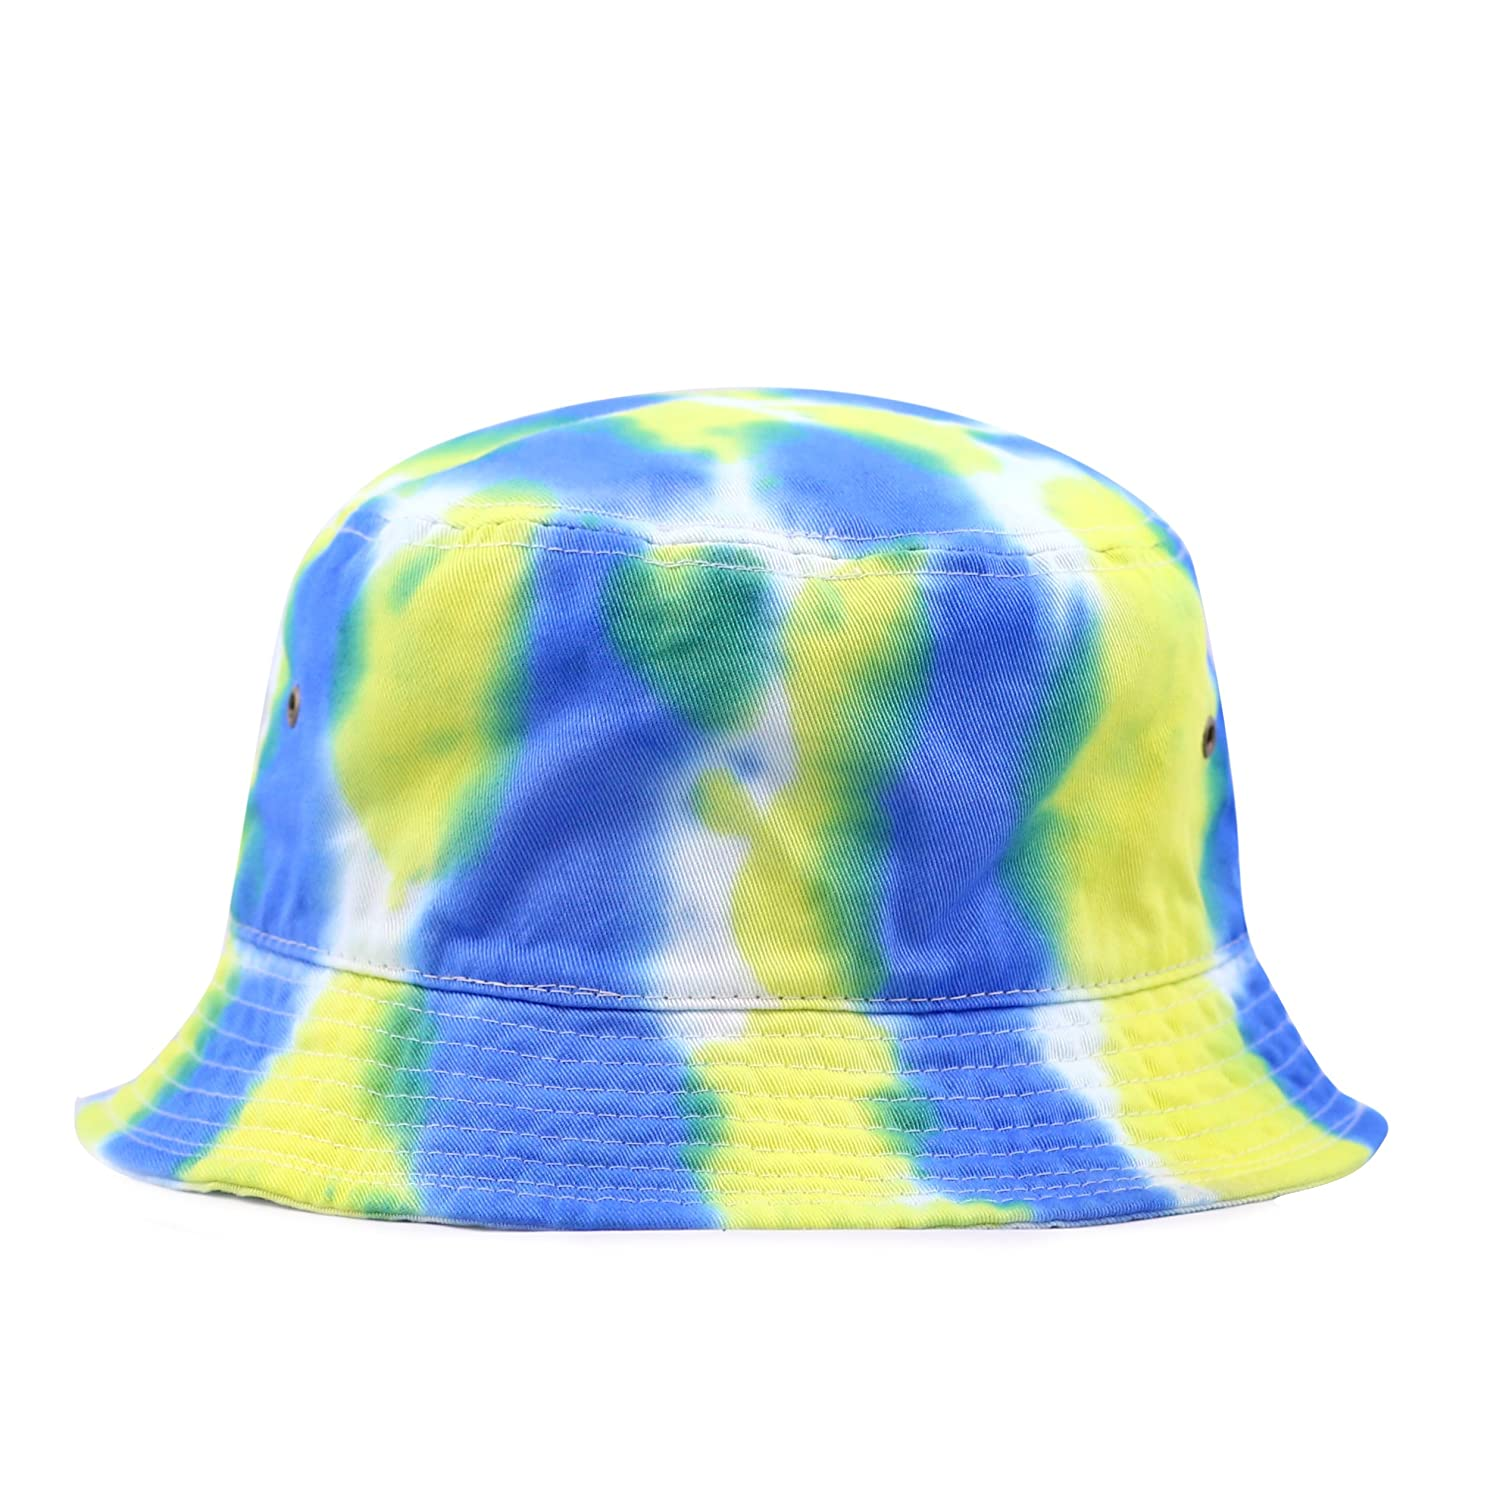 7e819ce17ac THE HAT DEPOT 300TD 100% Cotton Tie Dye Unisex Packable Summer Travel Bucket  Hat at Amazon Women s Clothing store